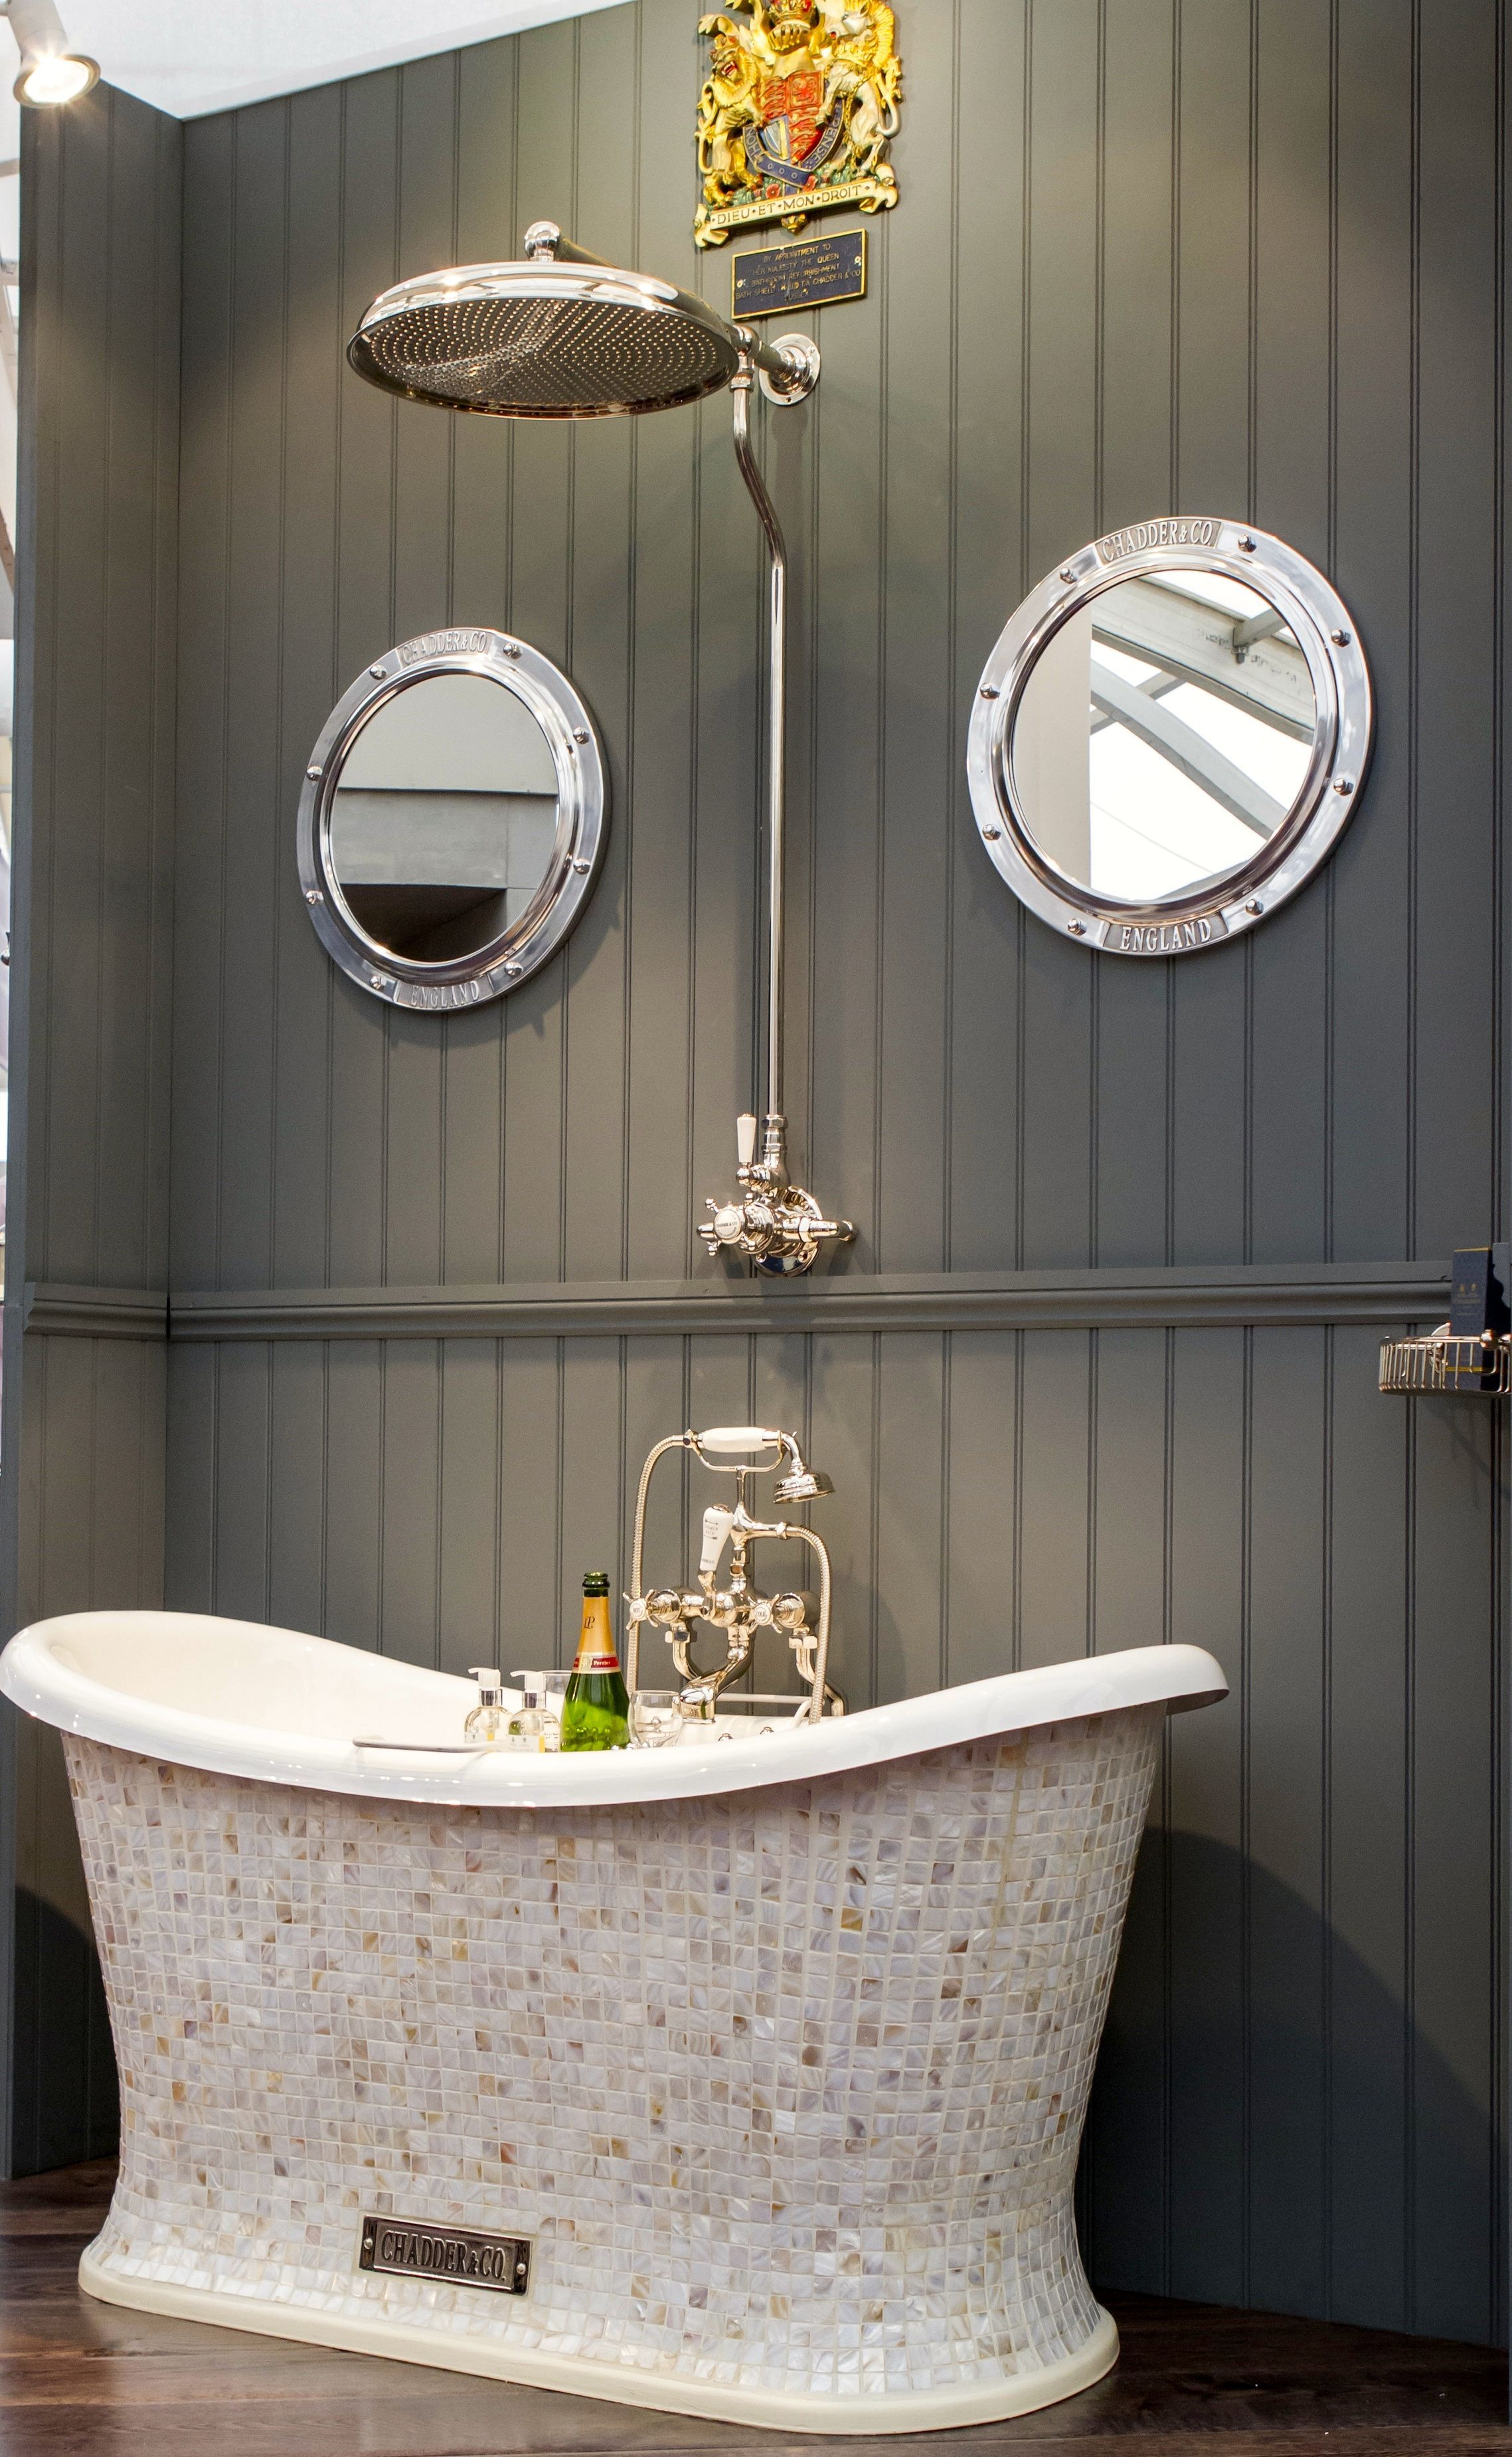 Badezimmer ideen fliesen dusche glamor and beauty all in one space find luxury ideas for these